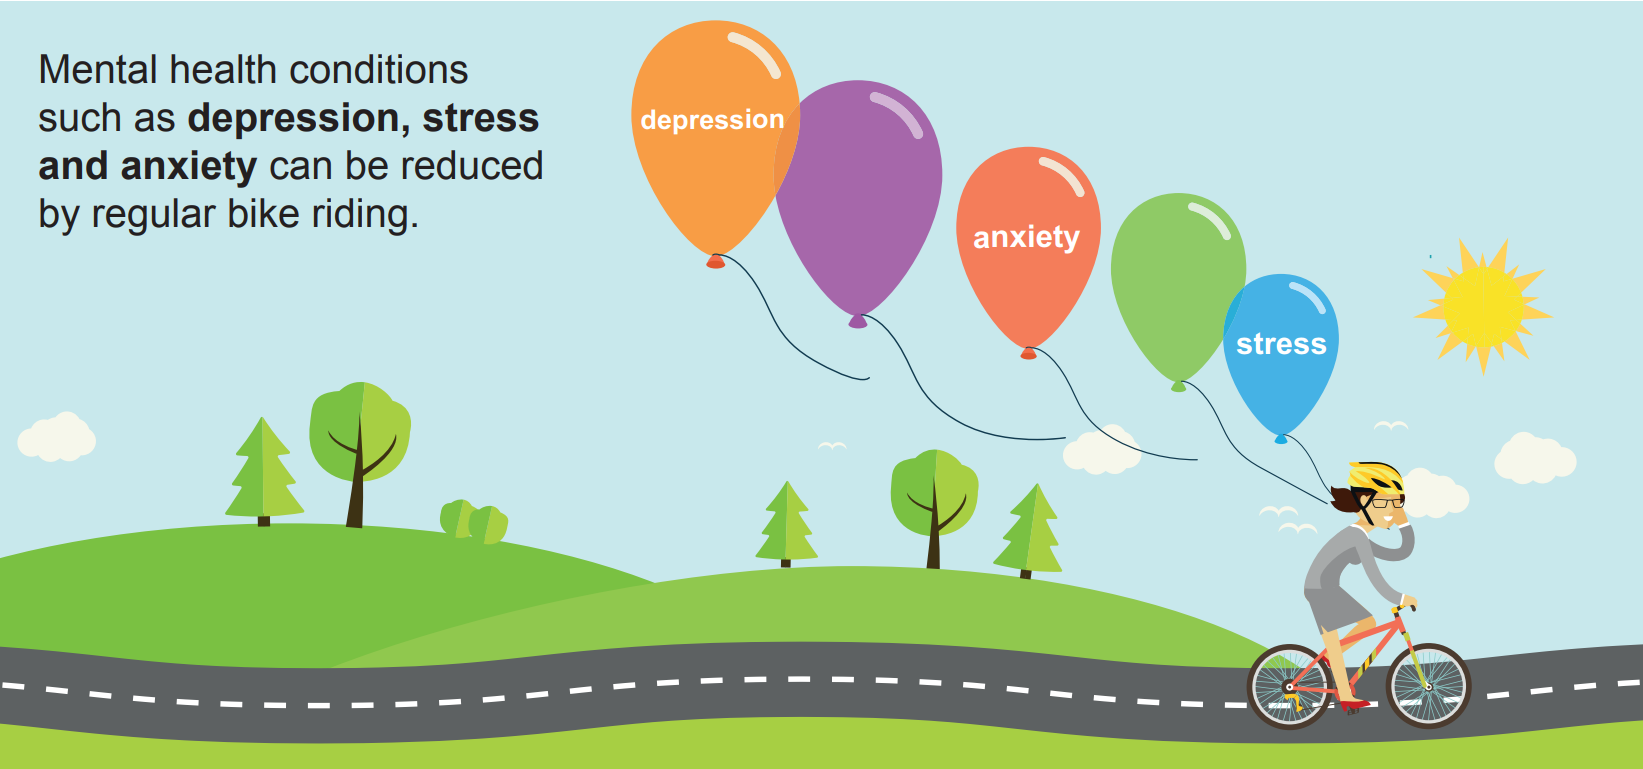 Mental health conditions such as depression, stress and anxiety can be reduced by regular bike riding